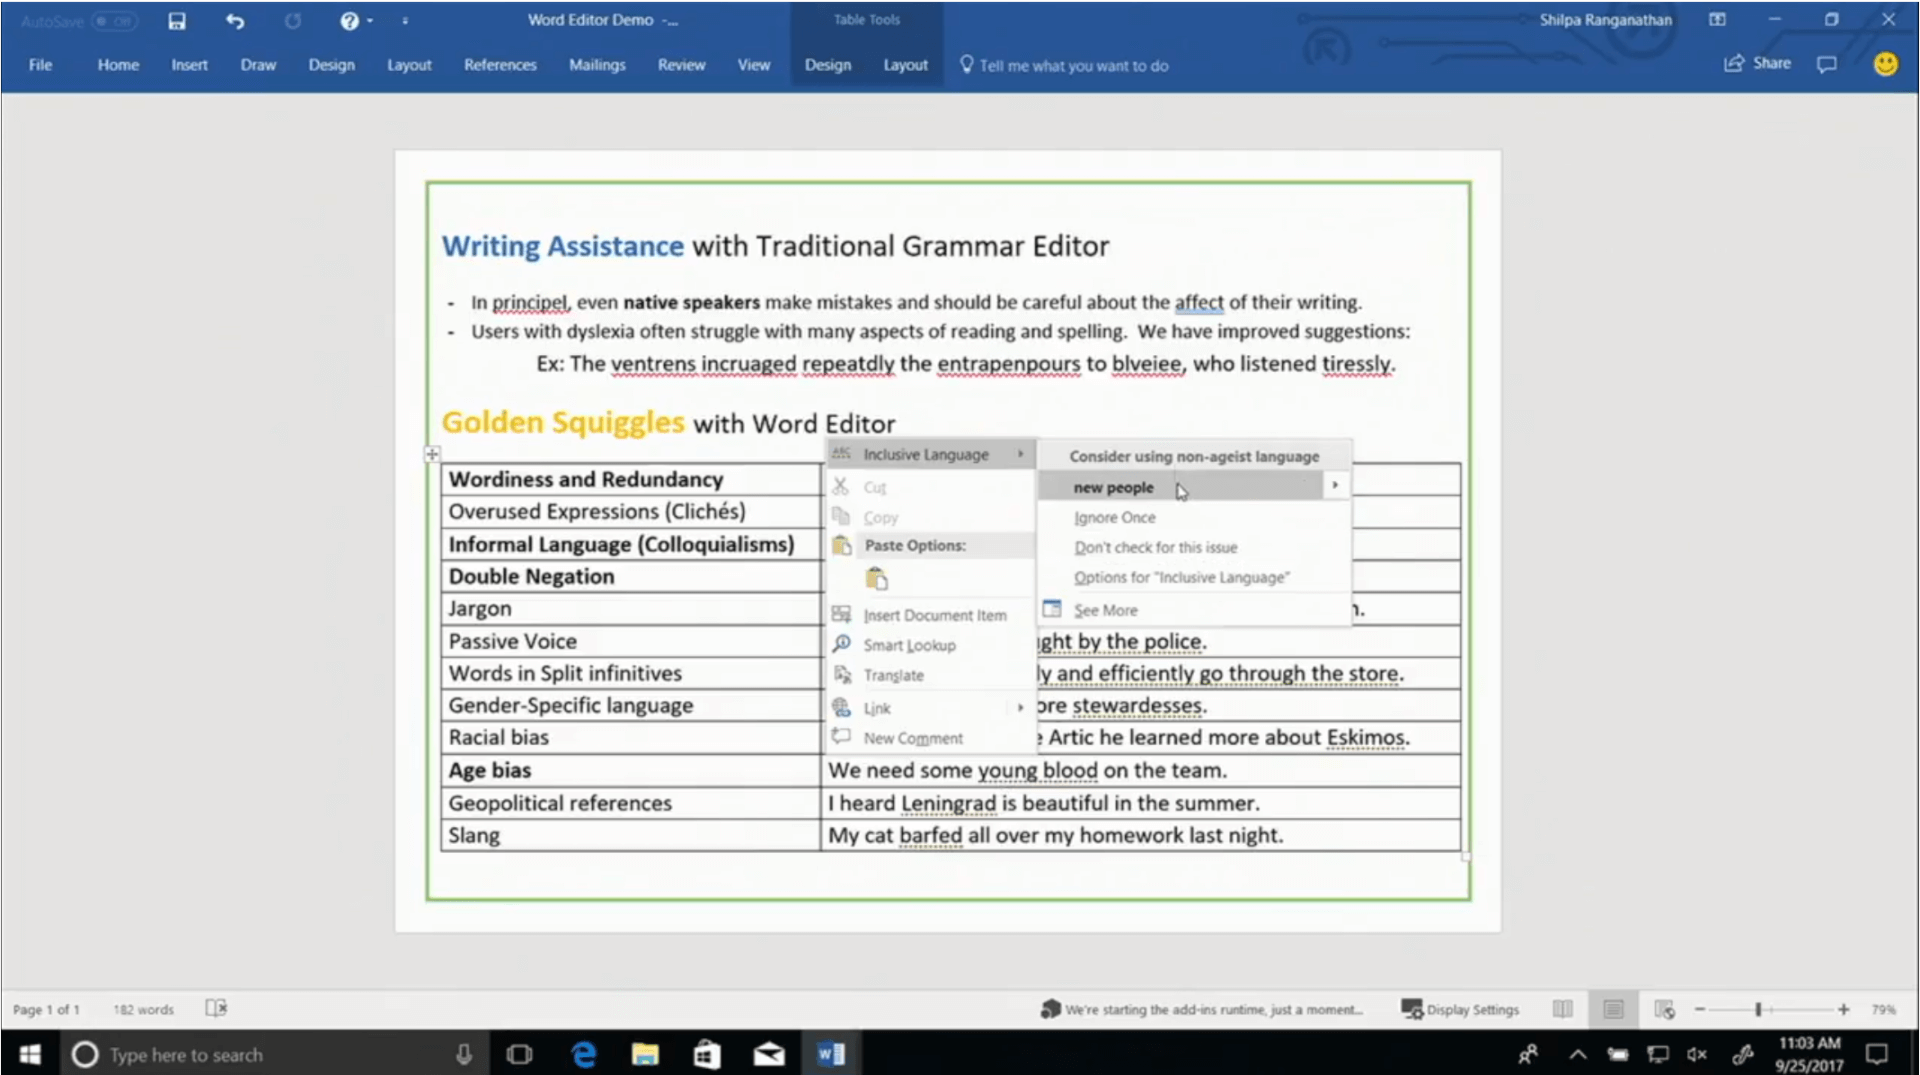 """Texte de remplacement généré par une machine: Editoq Demo - Referemes Rev•ew Home unk Irsert Draw tamst View toob tayXNJt Q Tell rne what you want to do Writing Assistance With Traditional Grammar Editor ln principe', even native speakers make mistakes and should be careful about the of their writing. Users With dyslexia often struggle With many aspects of reading and spelling. We have improved suggestions: Ex: The ventrens the to Who listened Golden Squiggles With Word Editor Wordiness and Redundancy Overused Expressions (Clichés) Informal Language (Colloquialisms) Double Negation Jargon Passive Voice Words in Split infinitives Gender-Specific language Racial bias Age bias Geopolitical references Slang Paste Options: Insert Document Item Smart Looup Translate New Comment Consider using non•geist langu•ge lgr«e Dont check for ttvs issue Qptions for •tnclustve larguage• IBh.t by the poliçe. ly and effiçiently gp thrpugh the.stpre. ore stewardesses. Artic he learned more about Eskimos. We need some ypgng blood_ on the team. I heard Leningrad is beautiful in the summer. My cat bprfed all over my homework last night. 3 """"Wre stytng add•ms pst a CIS p•ge 1 ot Type here to search Sett'ngs a.ll 1103 AM 9/25/2017"""